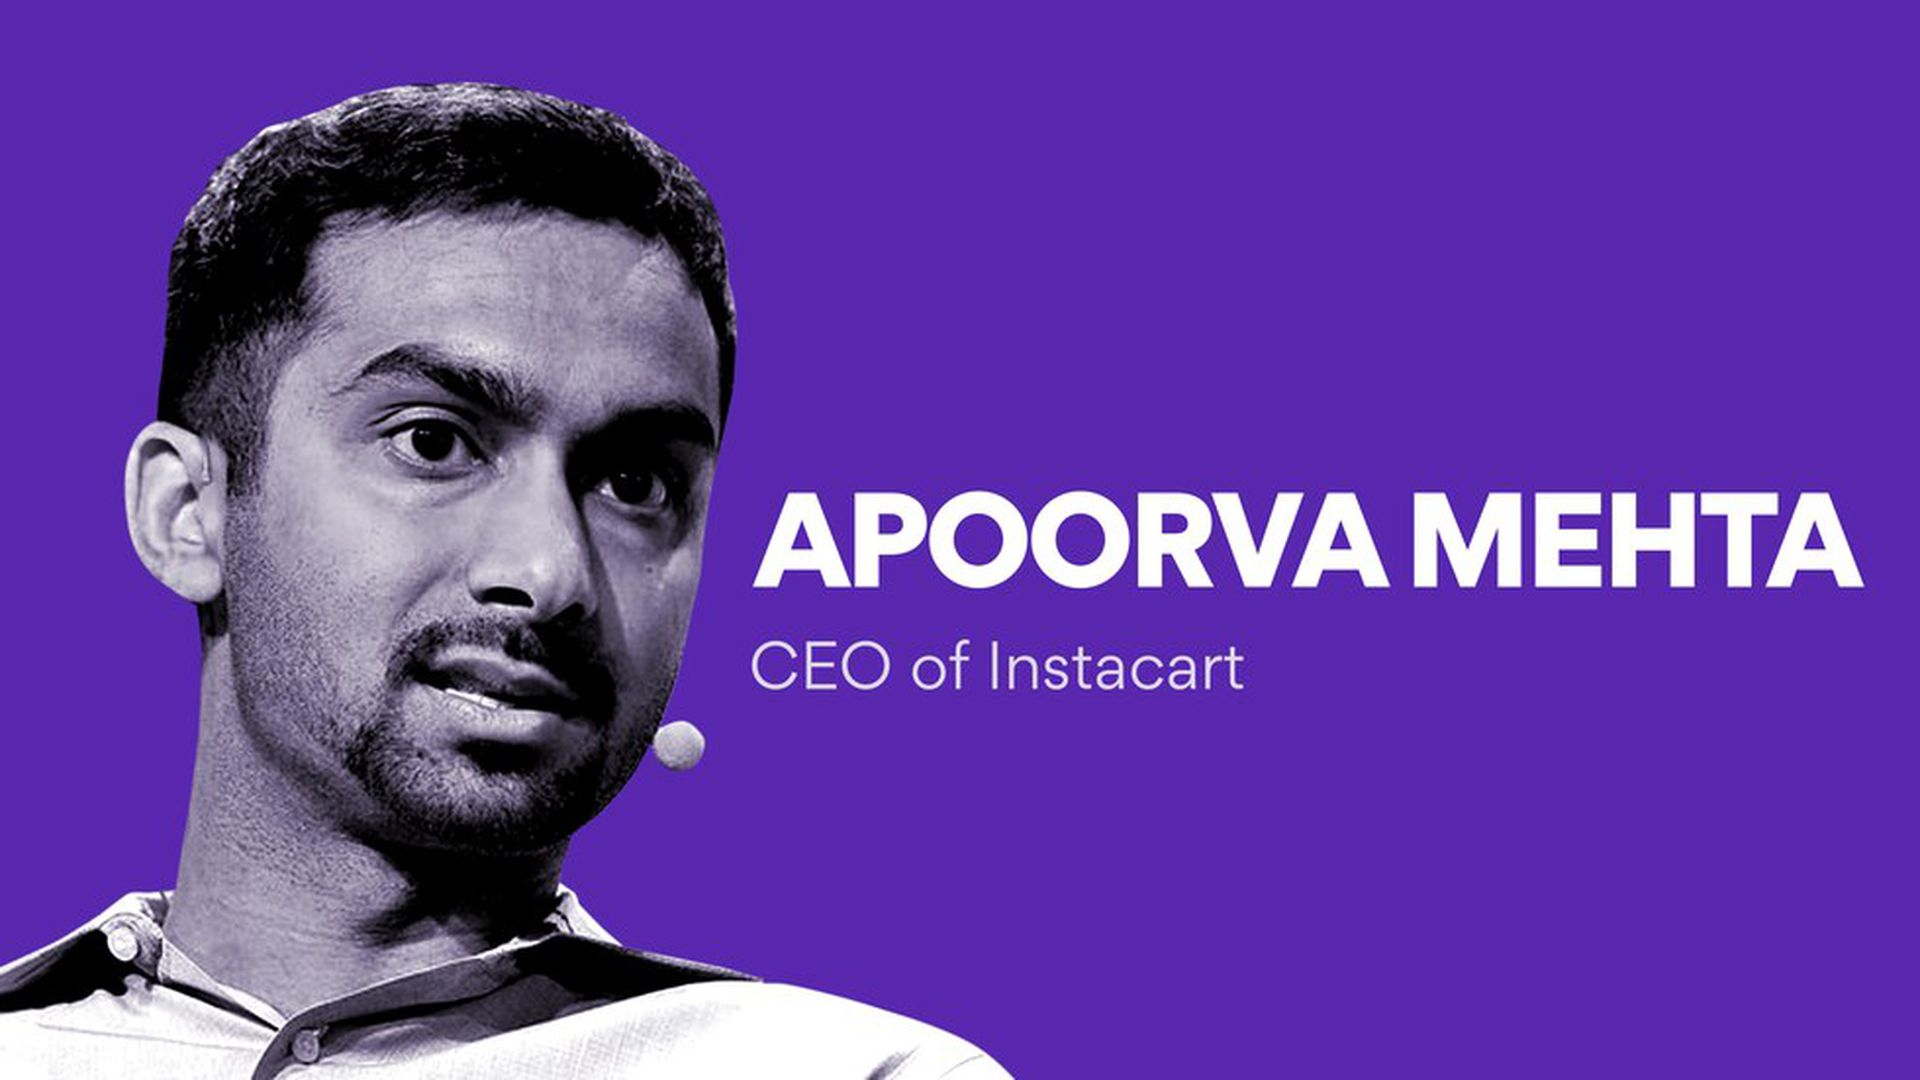 Instacart CEO talks about his $3 4 billion company - Axios